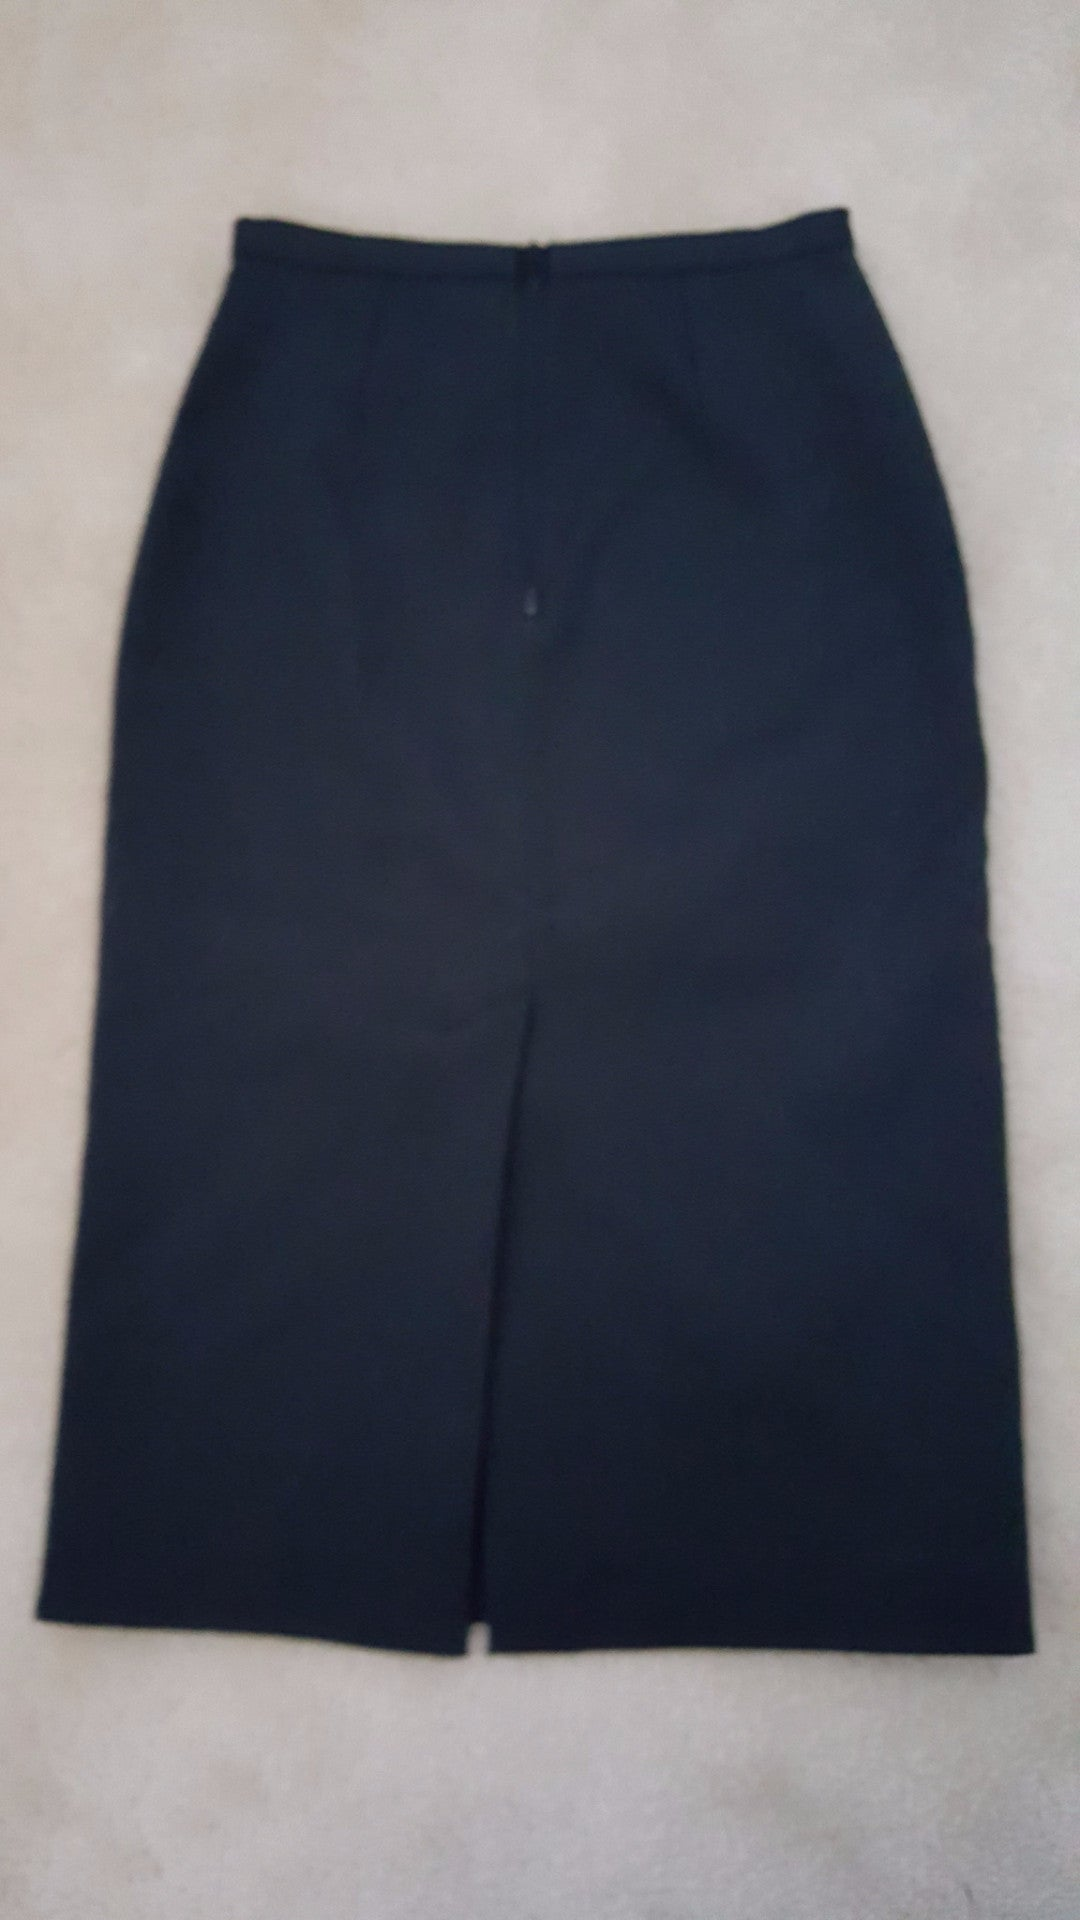 BURBERRY PRORSUM COTTON EMBELLISHED PENCIL SKIRT - SIZE 36